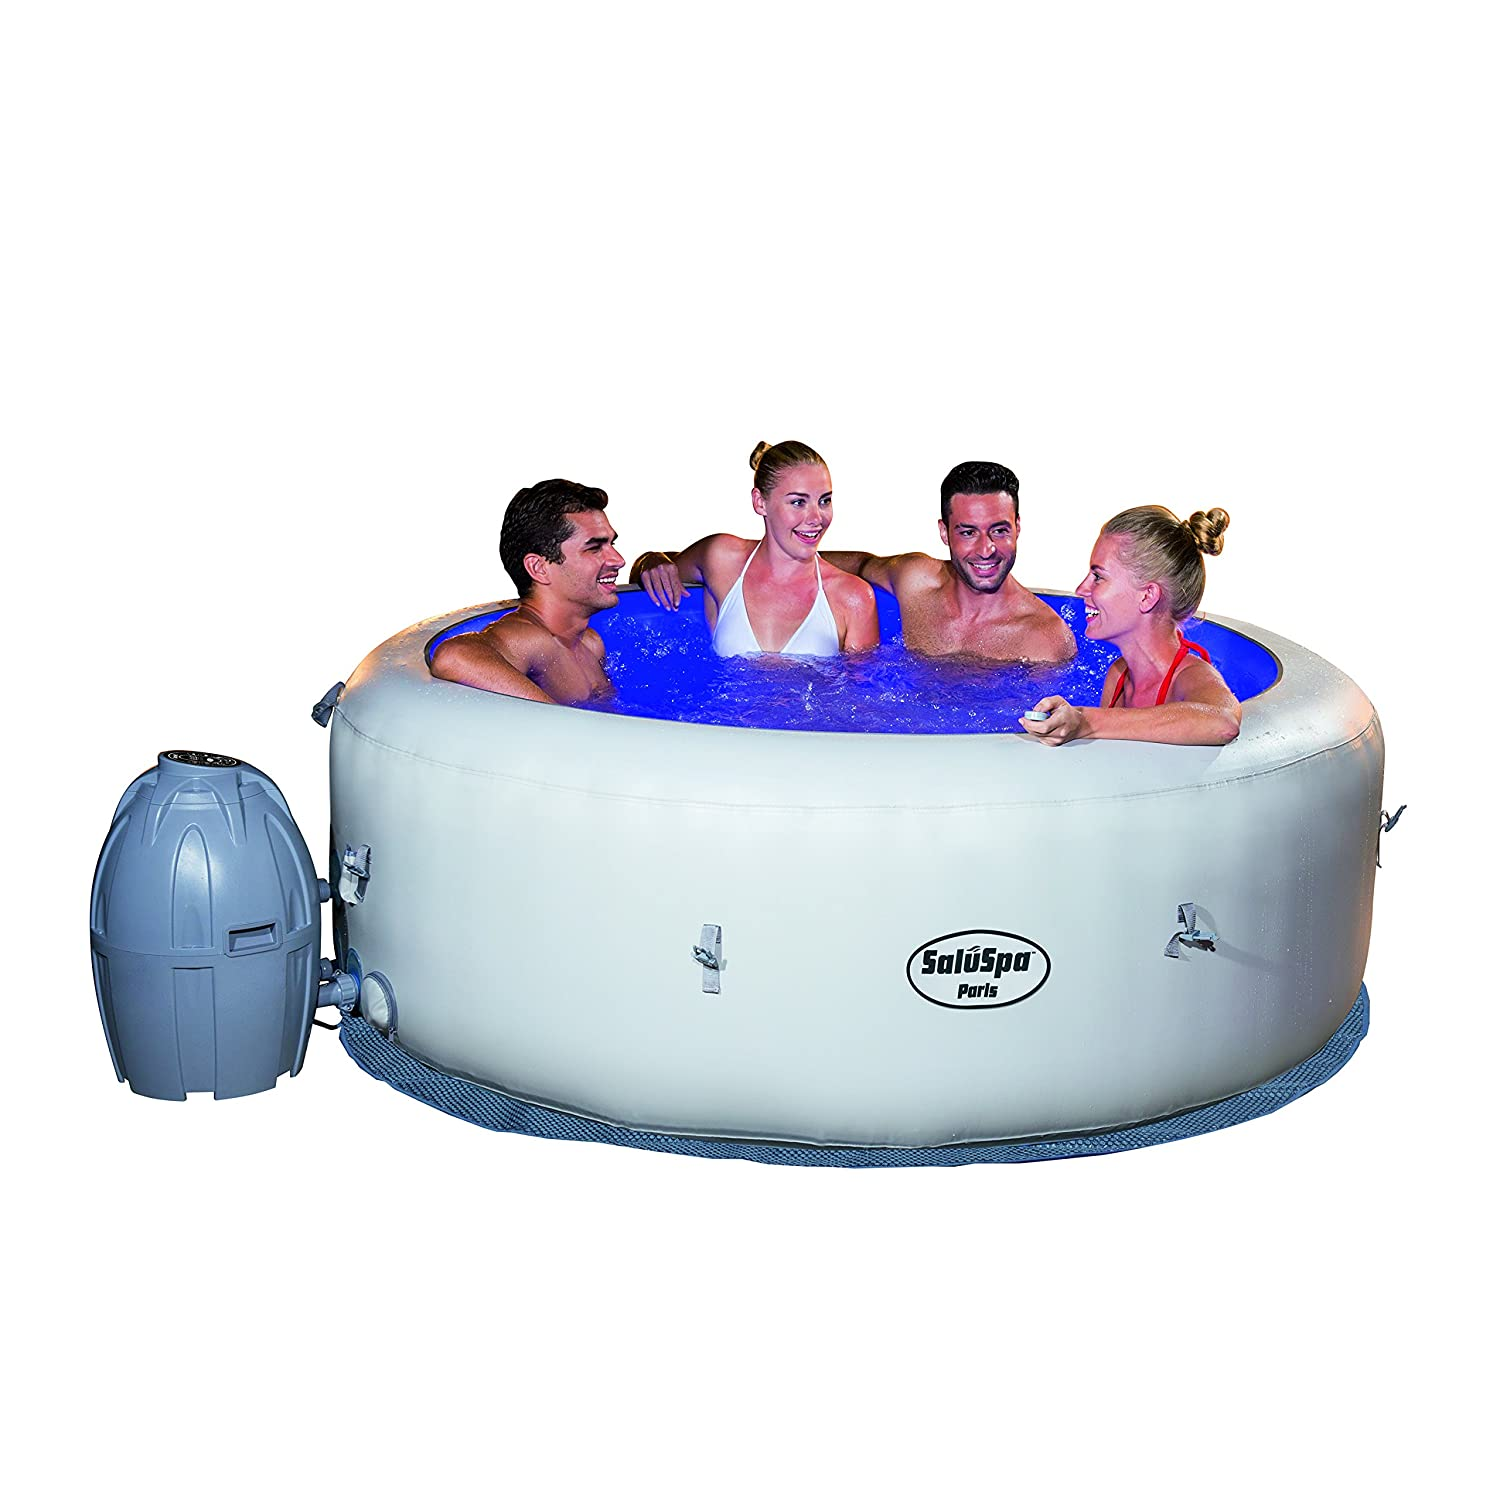 hot outdoor coleman person bubble jacuzzi inflatable portable com spa sale tub for saluspa tubs massage ip walmart